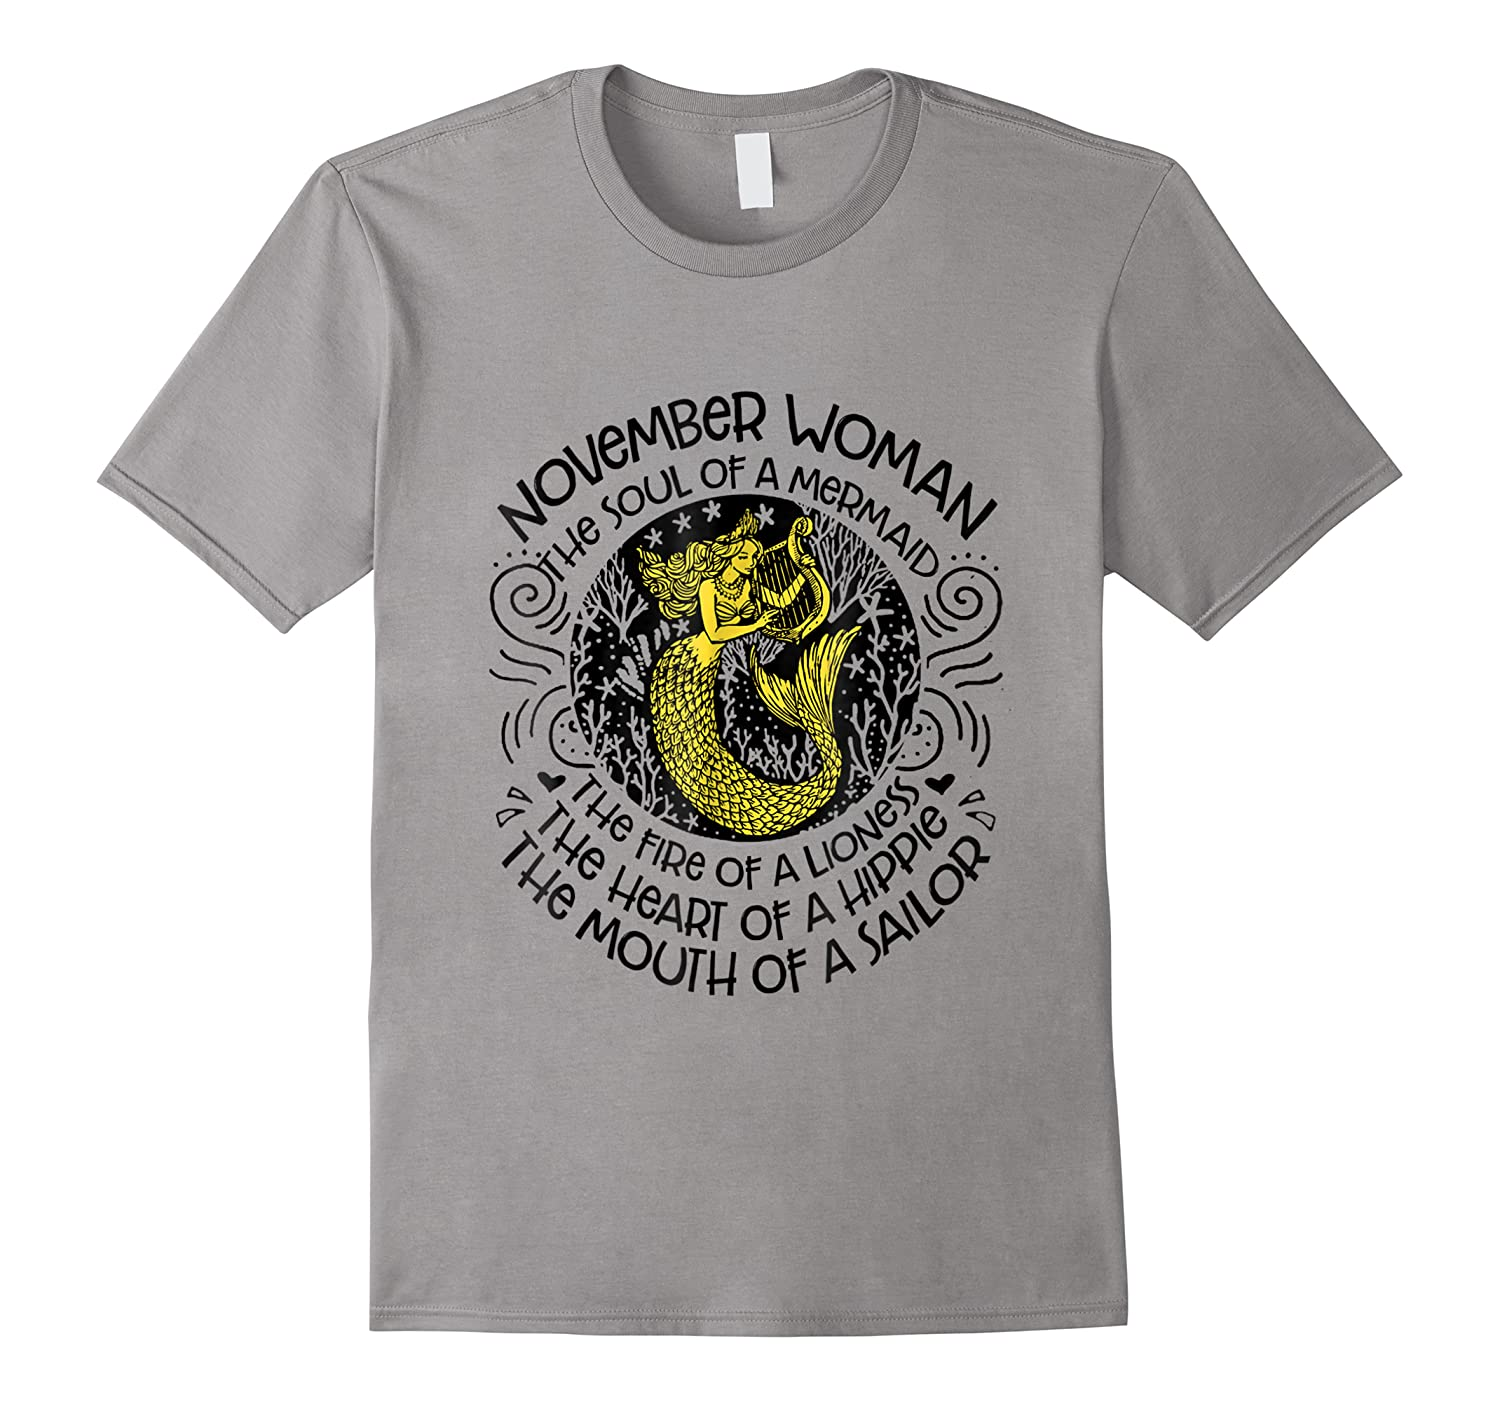 November Woman The Soul Of A Mermaid T Shirt Gift For